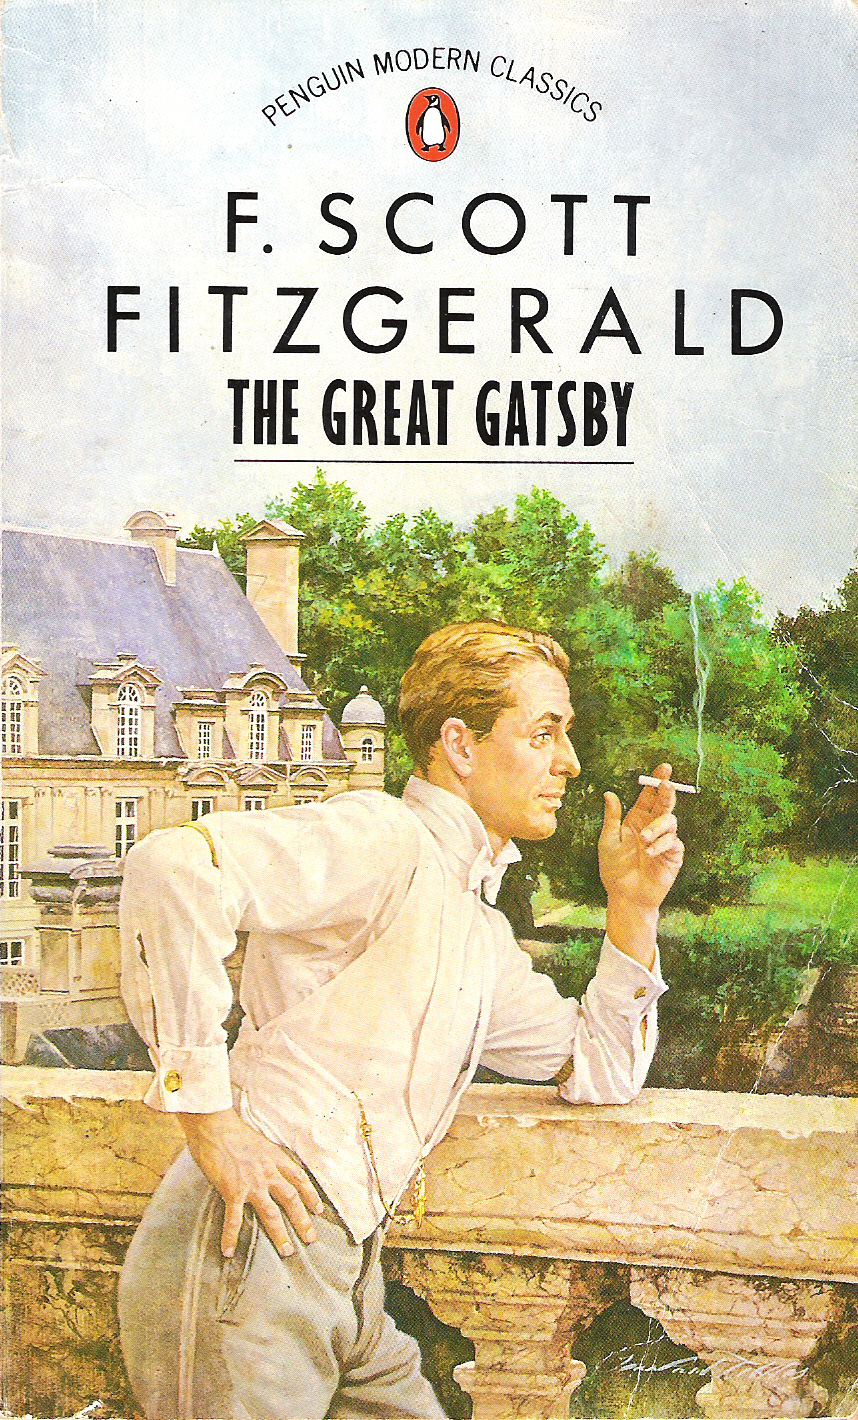 the roles of symbols in the great gatsby by f scott fitzgerald Klasstillhörighet keywords: the great gatsby, social class, status, f scott fitzgerald significant for the time and it plays an important role in the novel analysis class society and the american dream the ambition to succeed is central in the american dream and ambition is always present in.